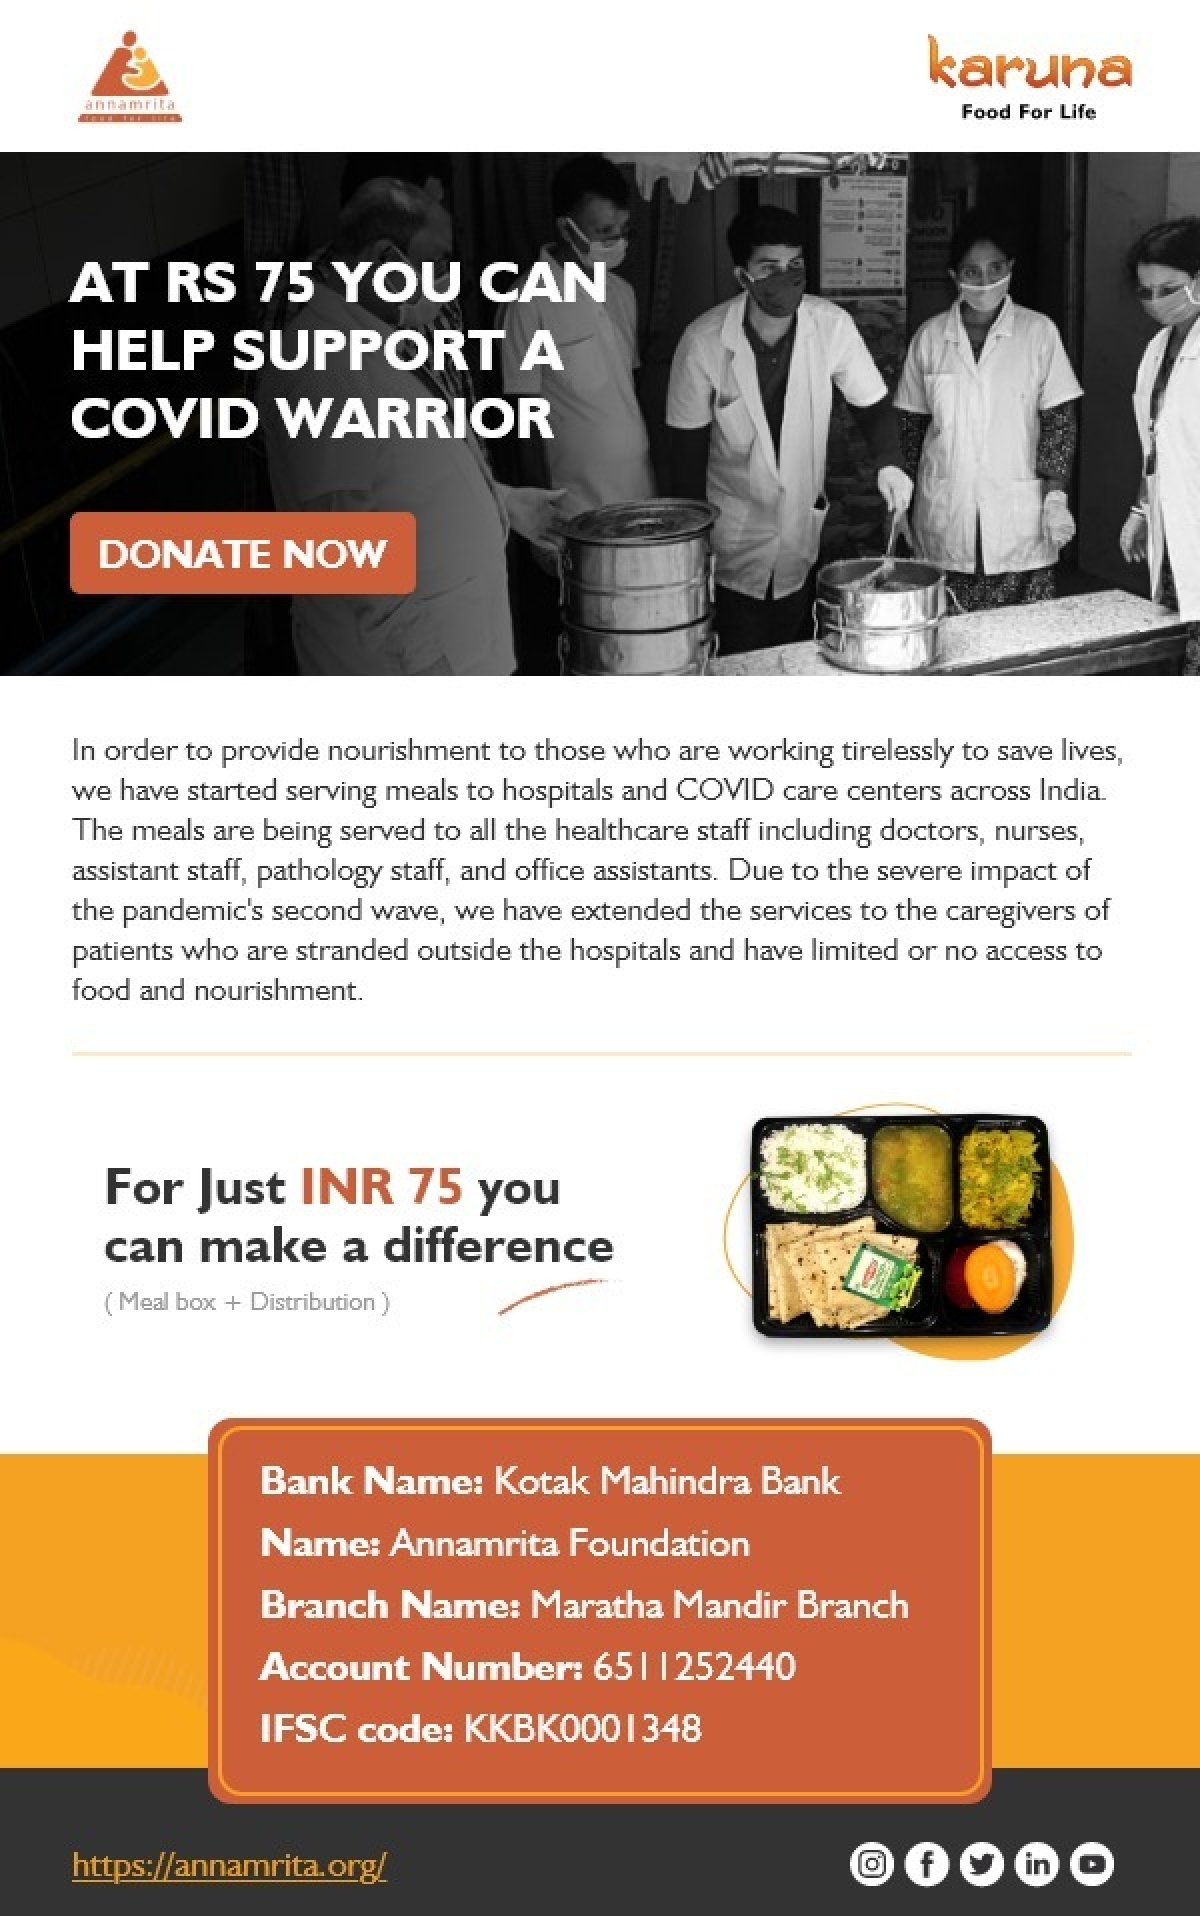 Annamrita Foundation to provide meals to COVID-19 warriors: Here's how you can donate